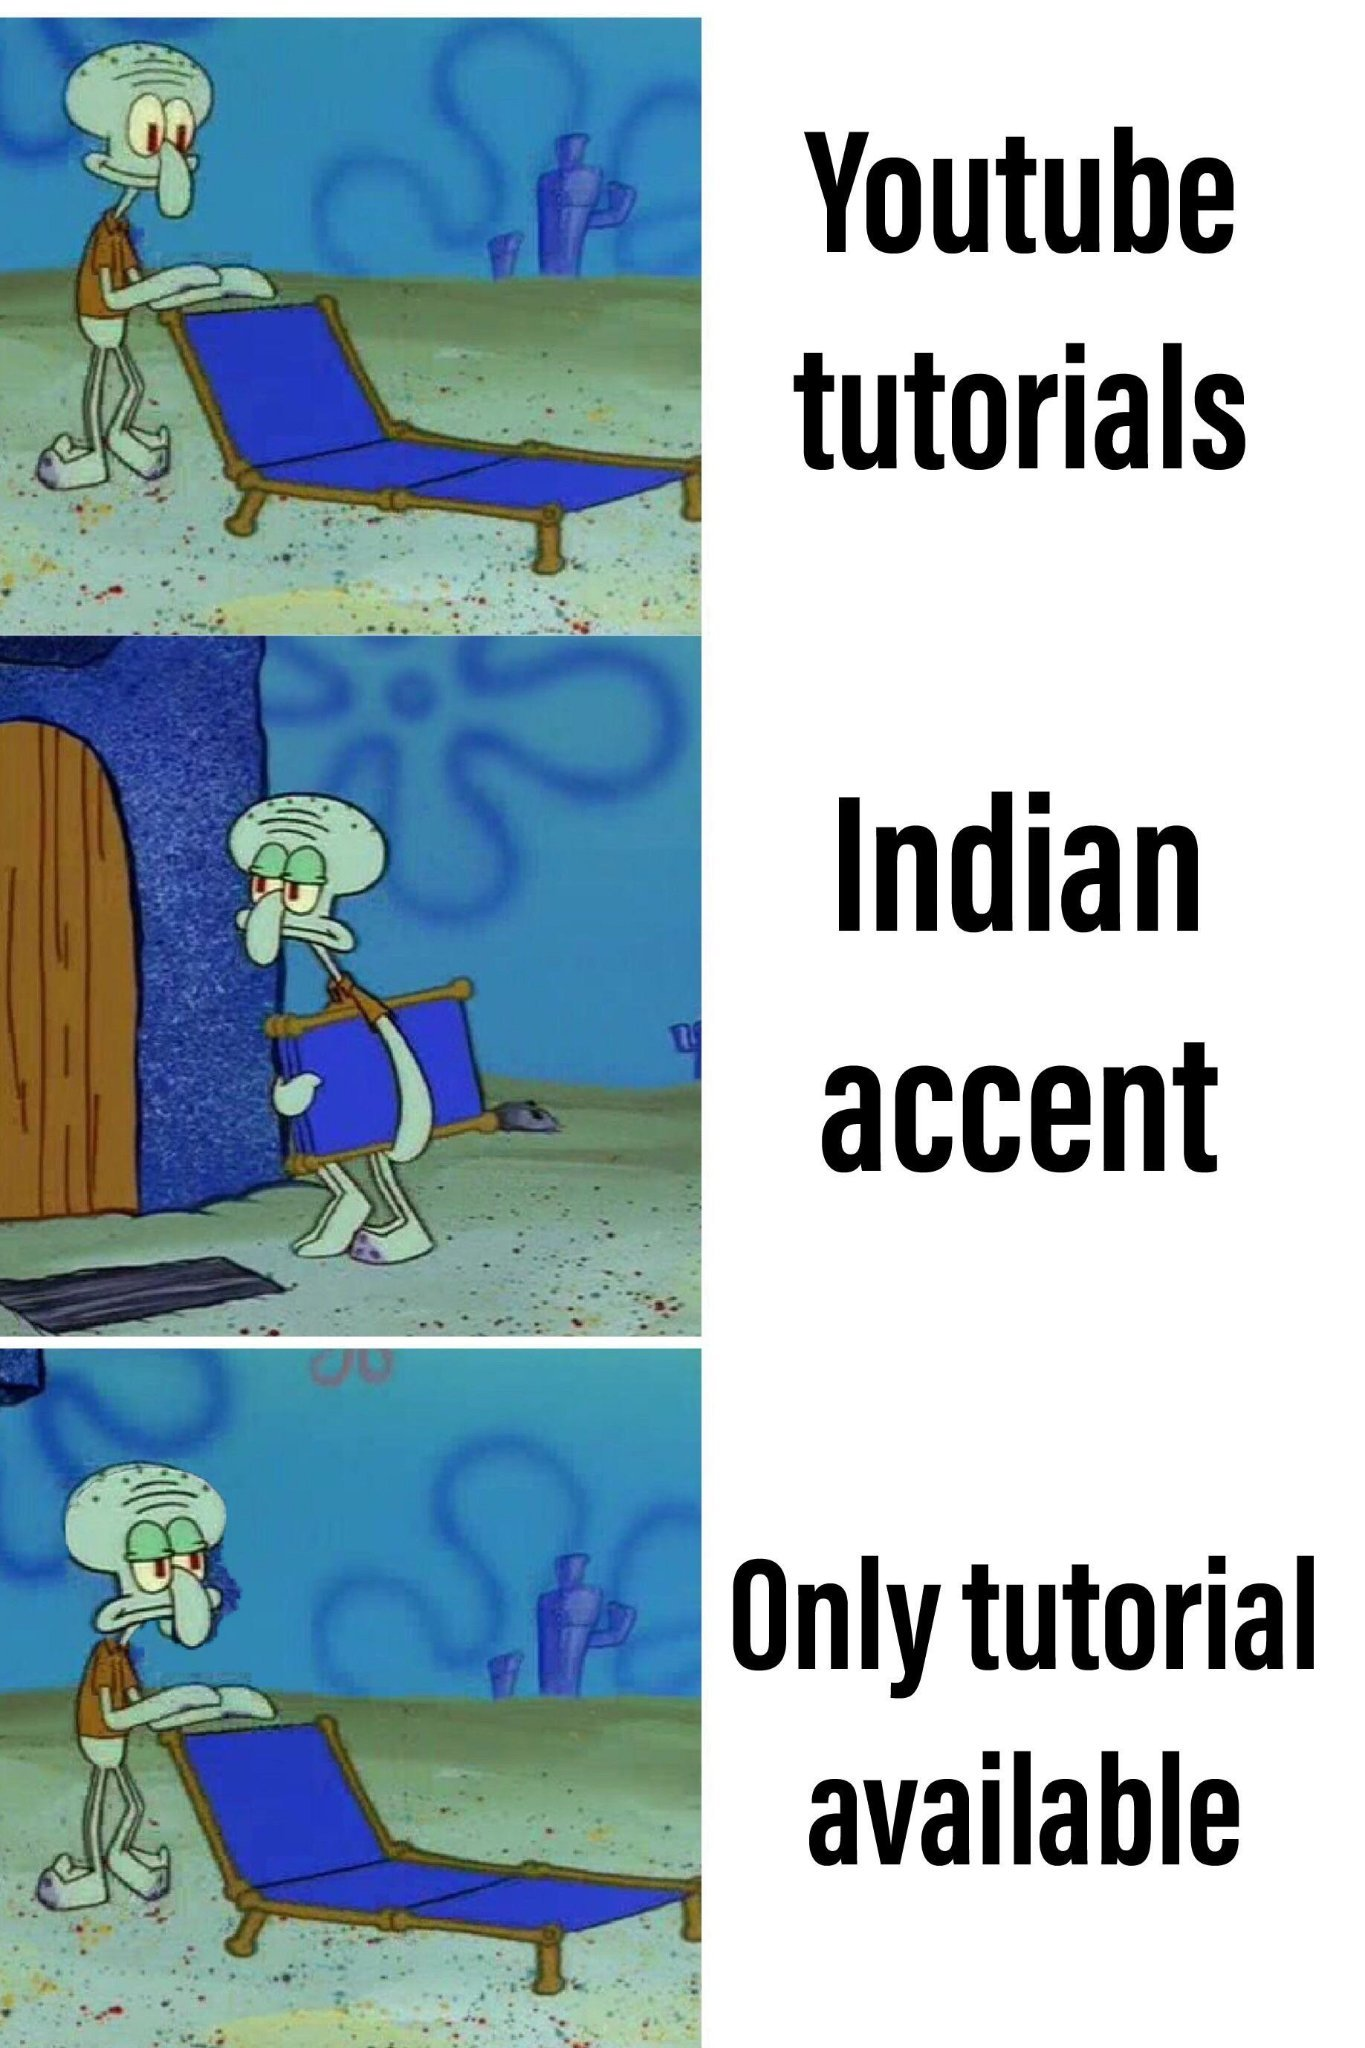 hello guys rohit here velcome to my channel - meme